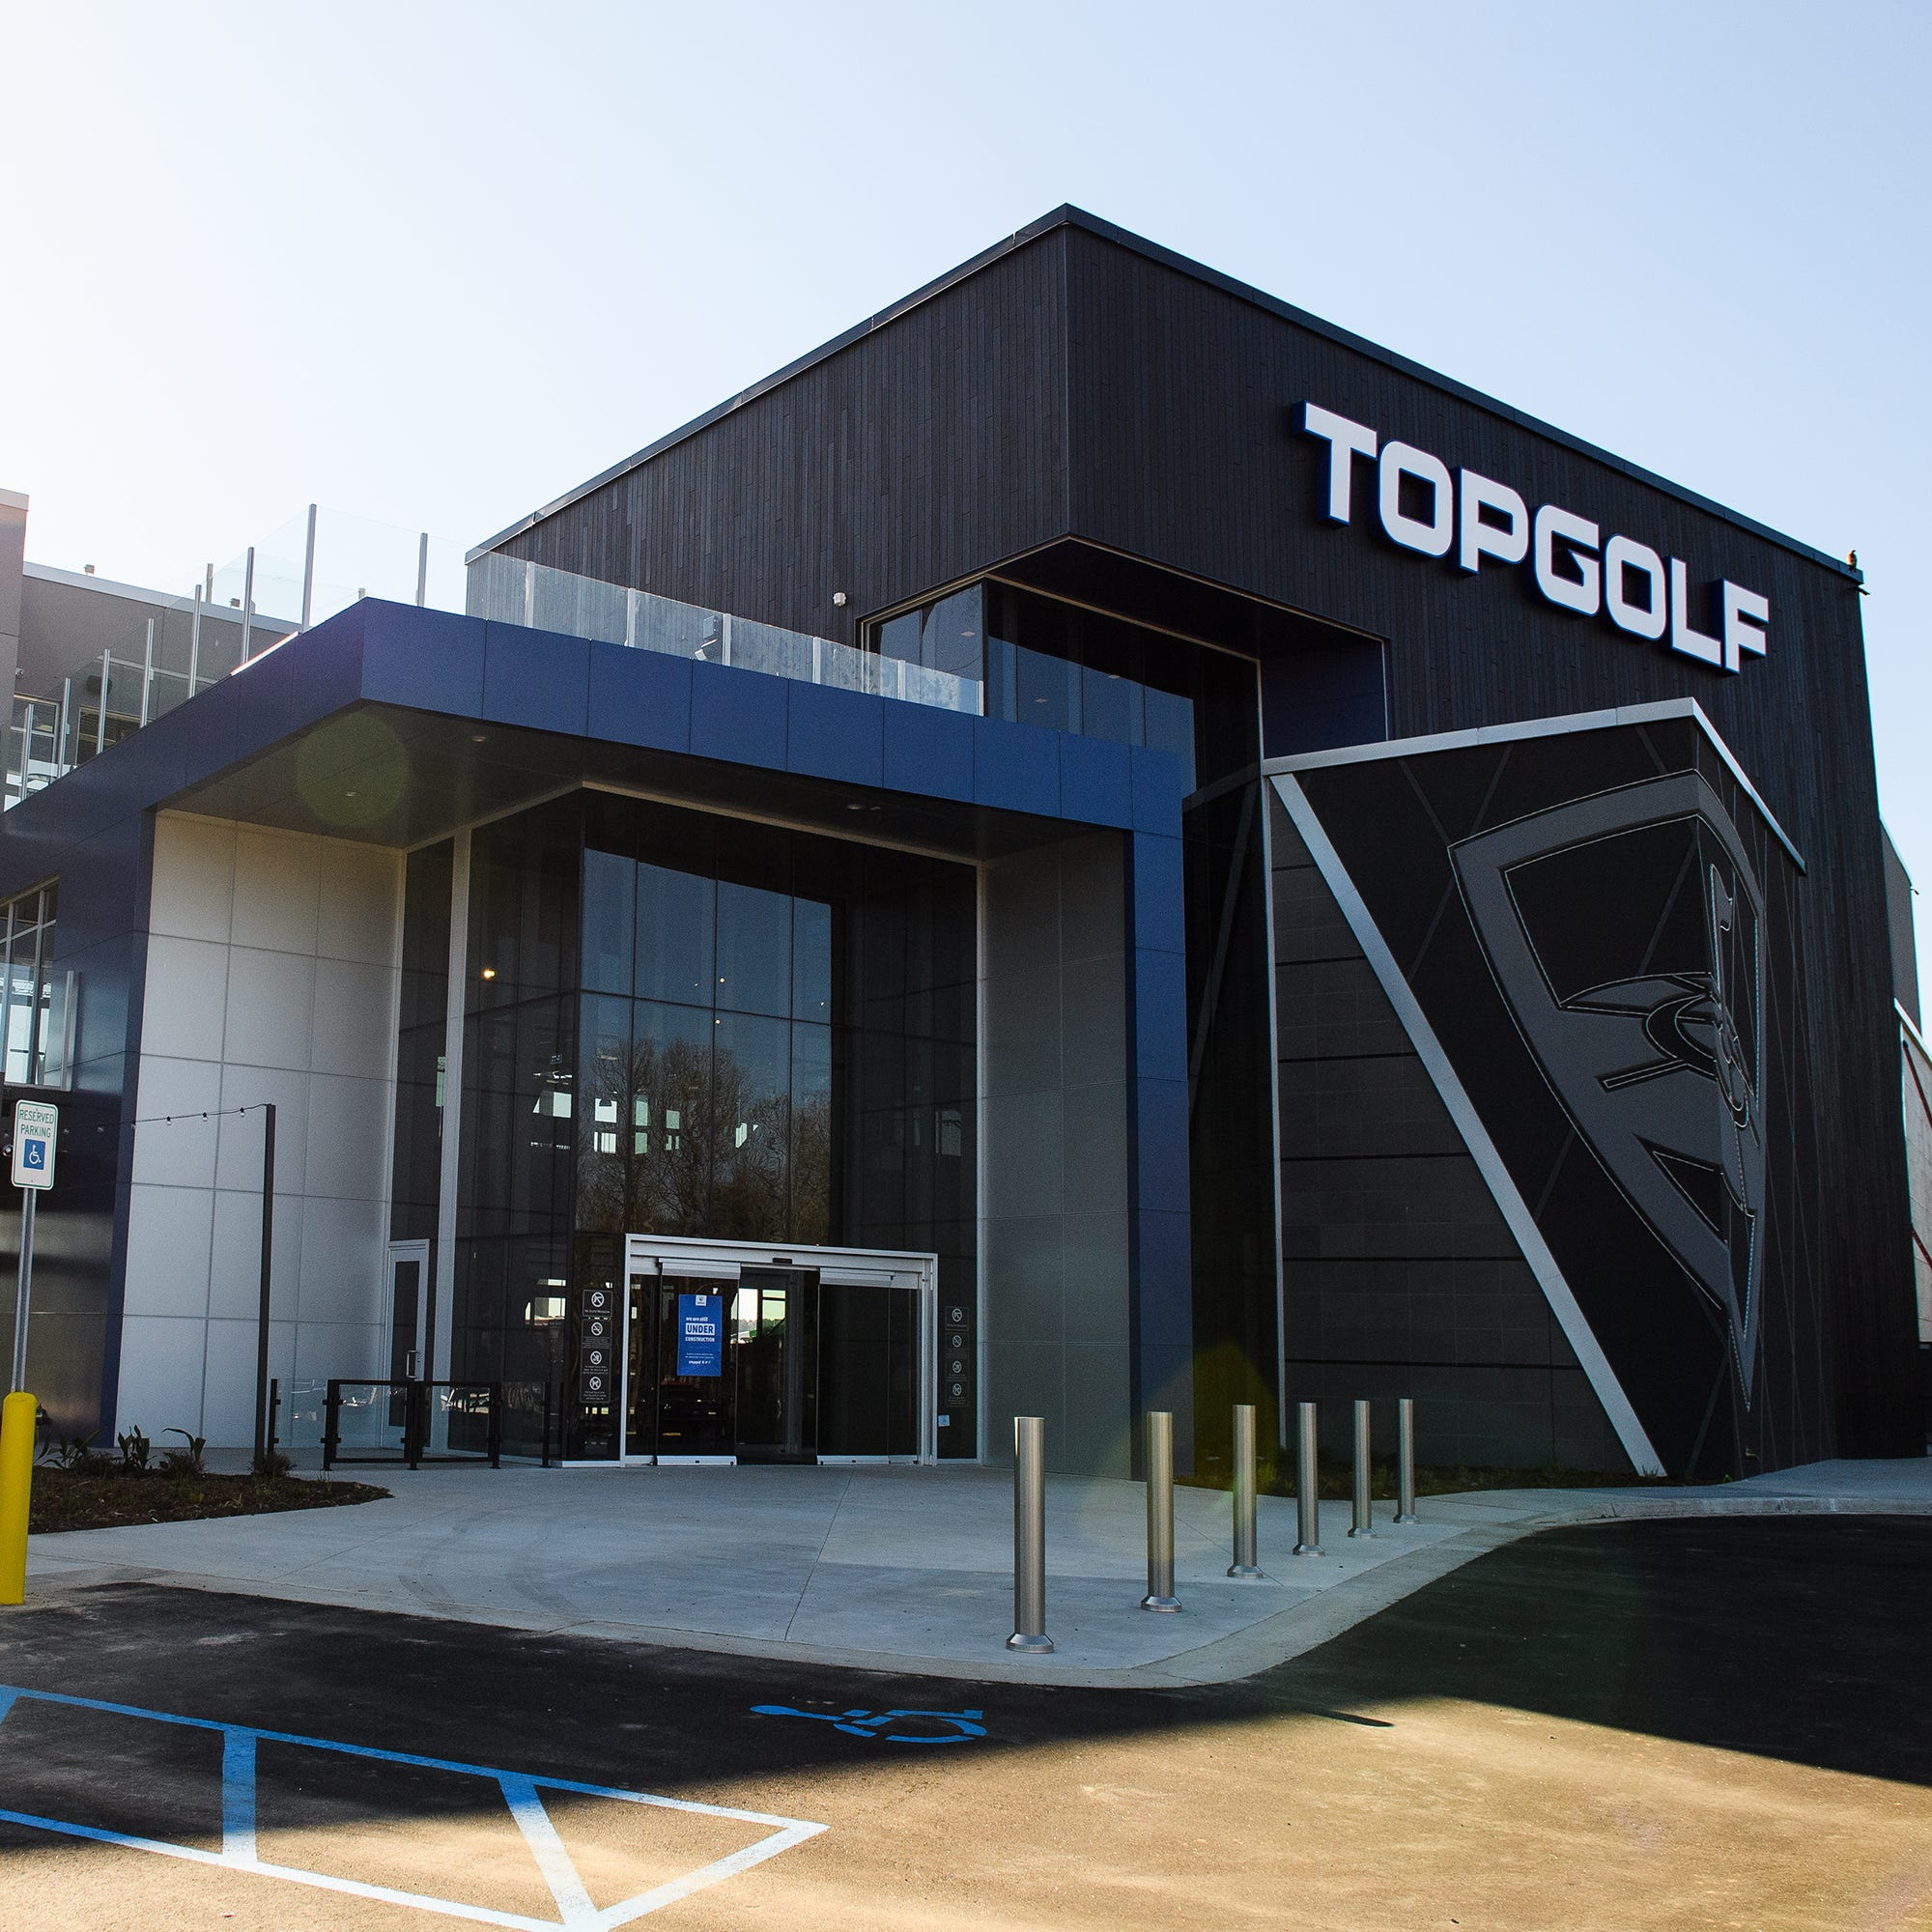 Dinner theater to be included at TopGolf development in Greenville, developer says